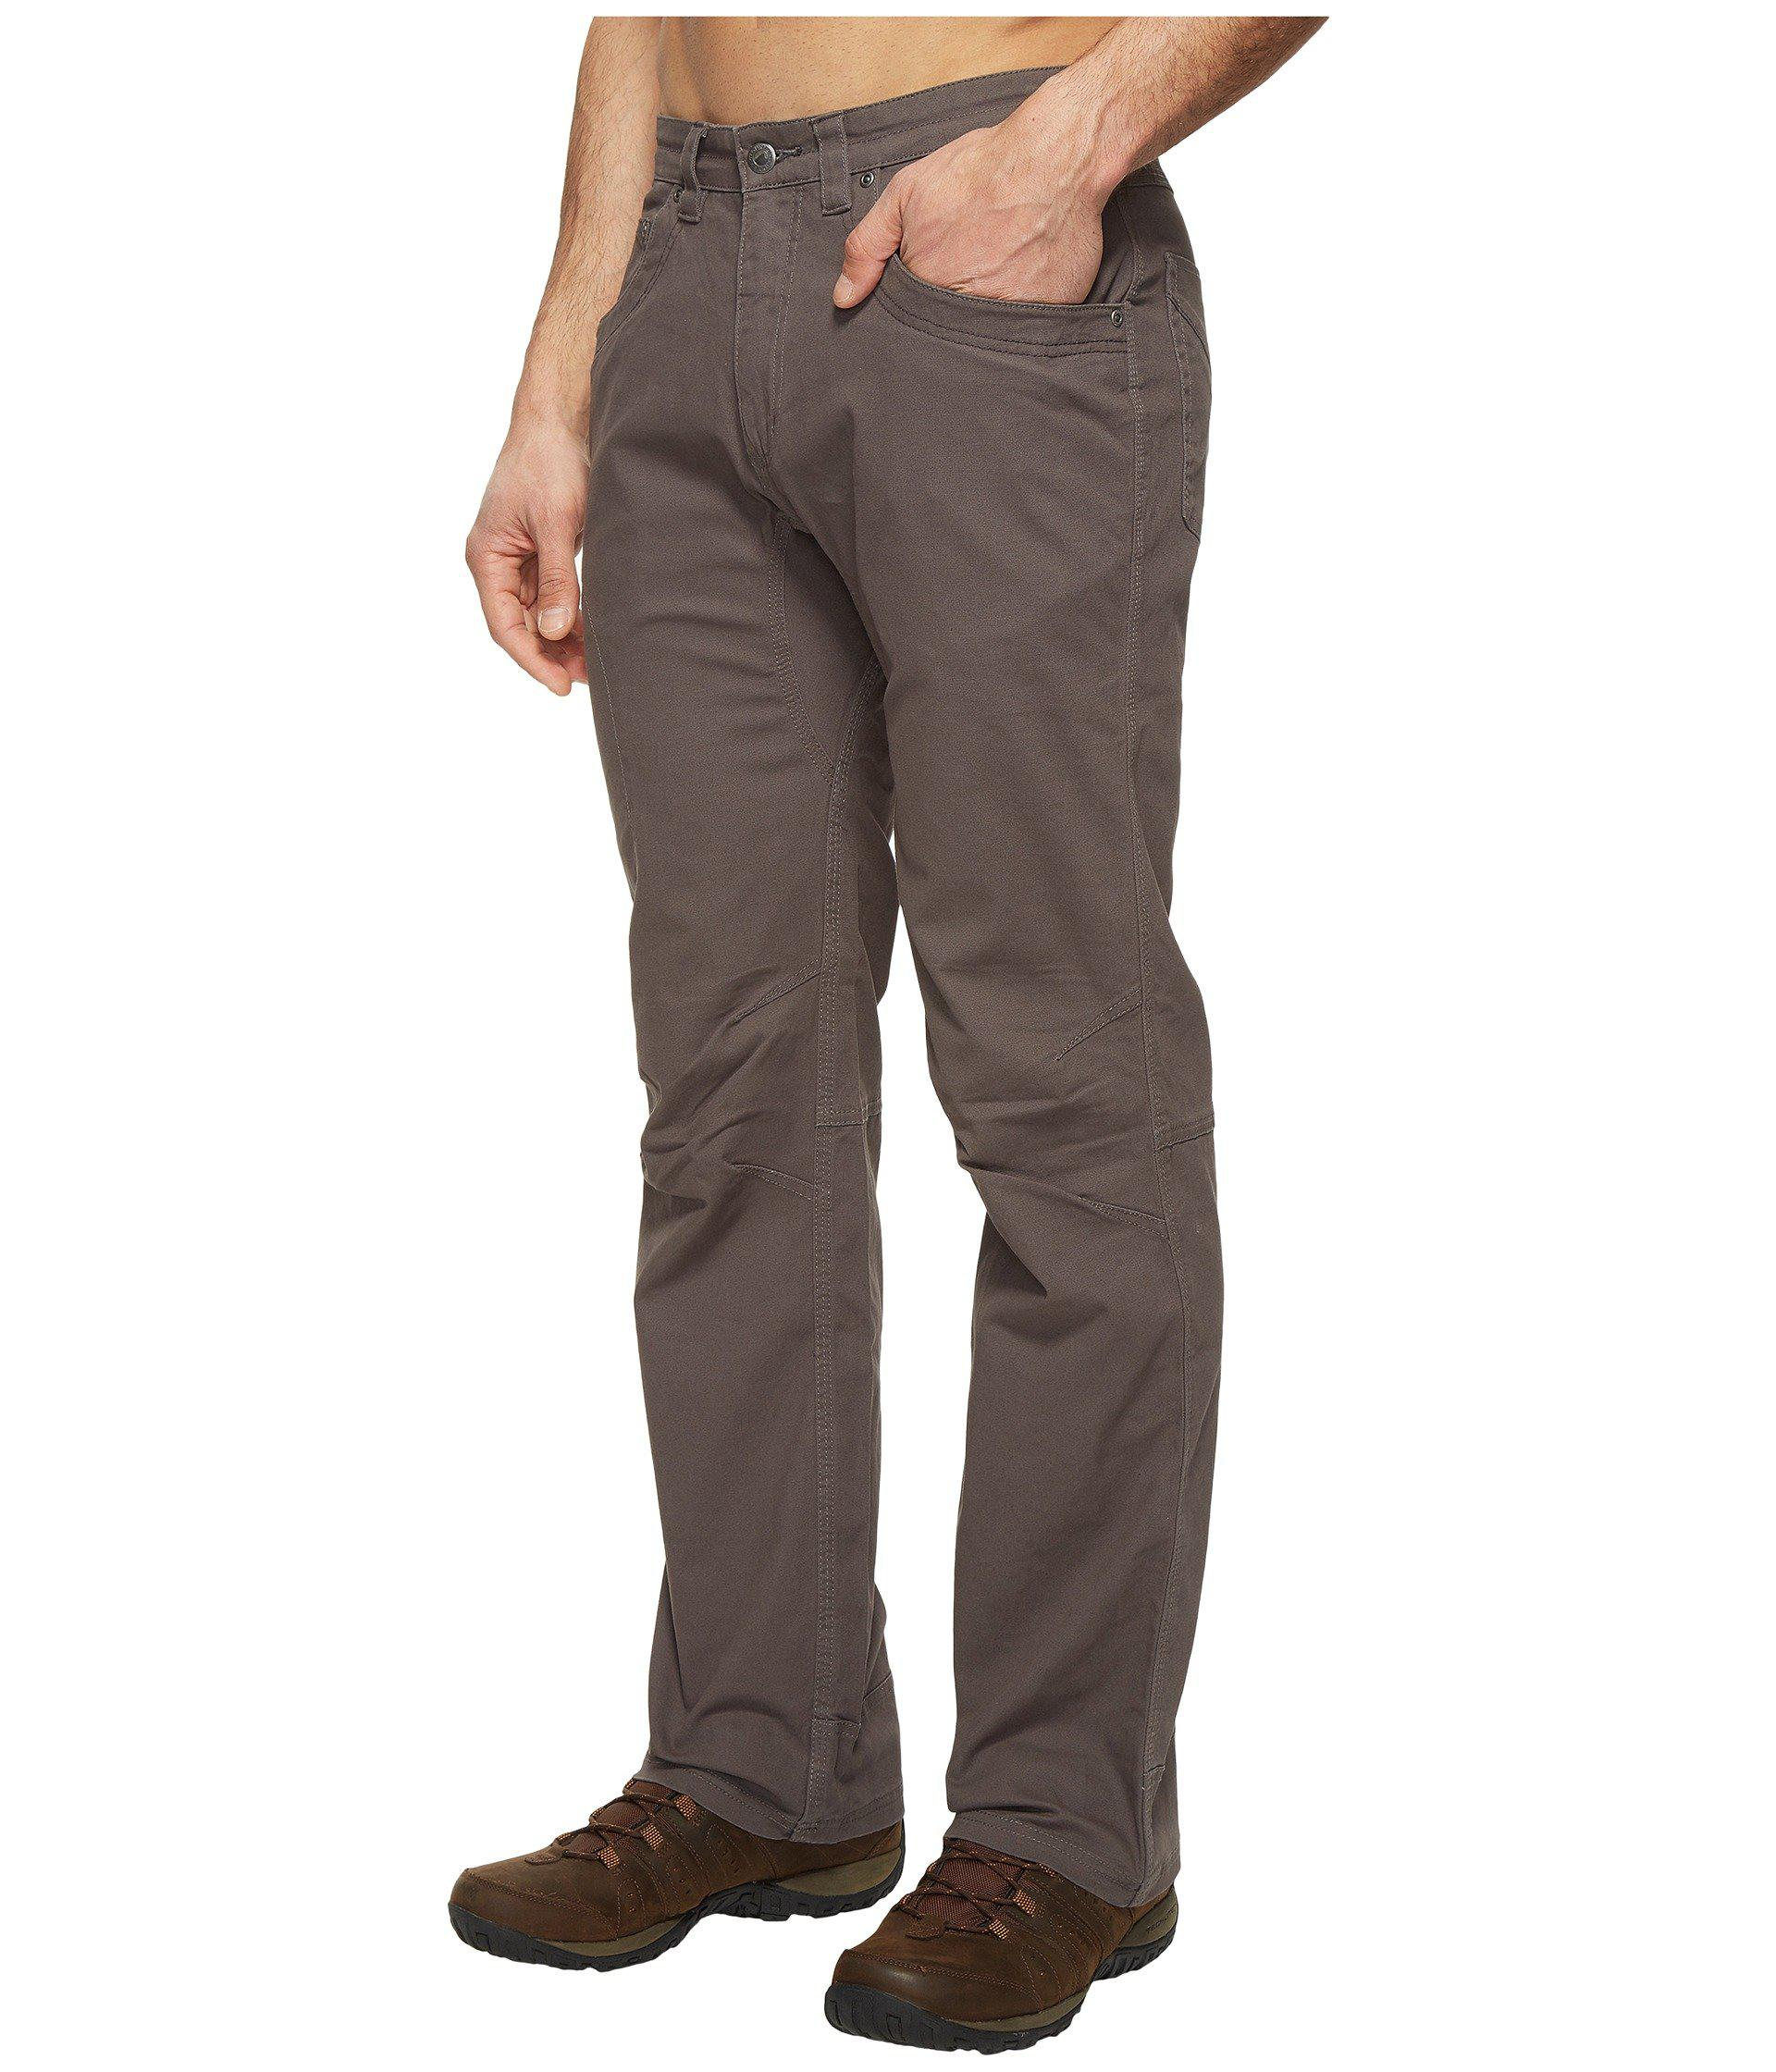 9c8ffb24 Lyst - Mountain Khakis Camber 106 Pants Classic Fit (slate) Men's Casual  Pants in Gray for Men